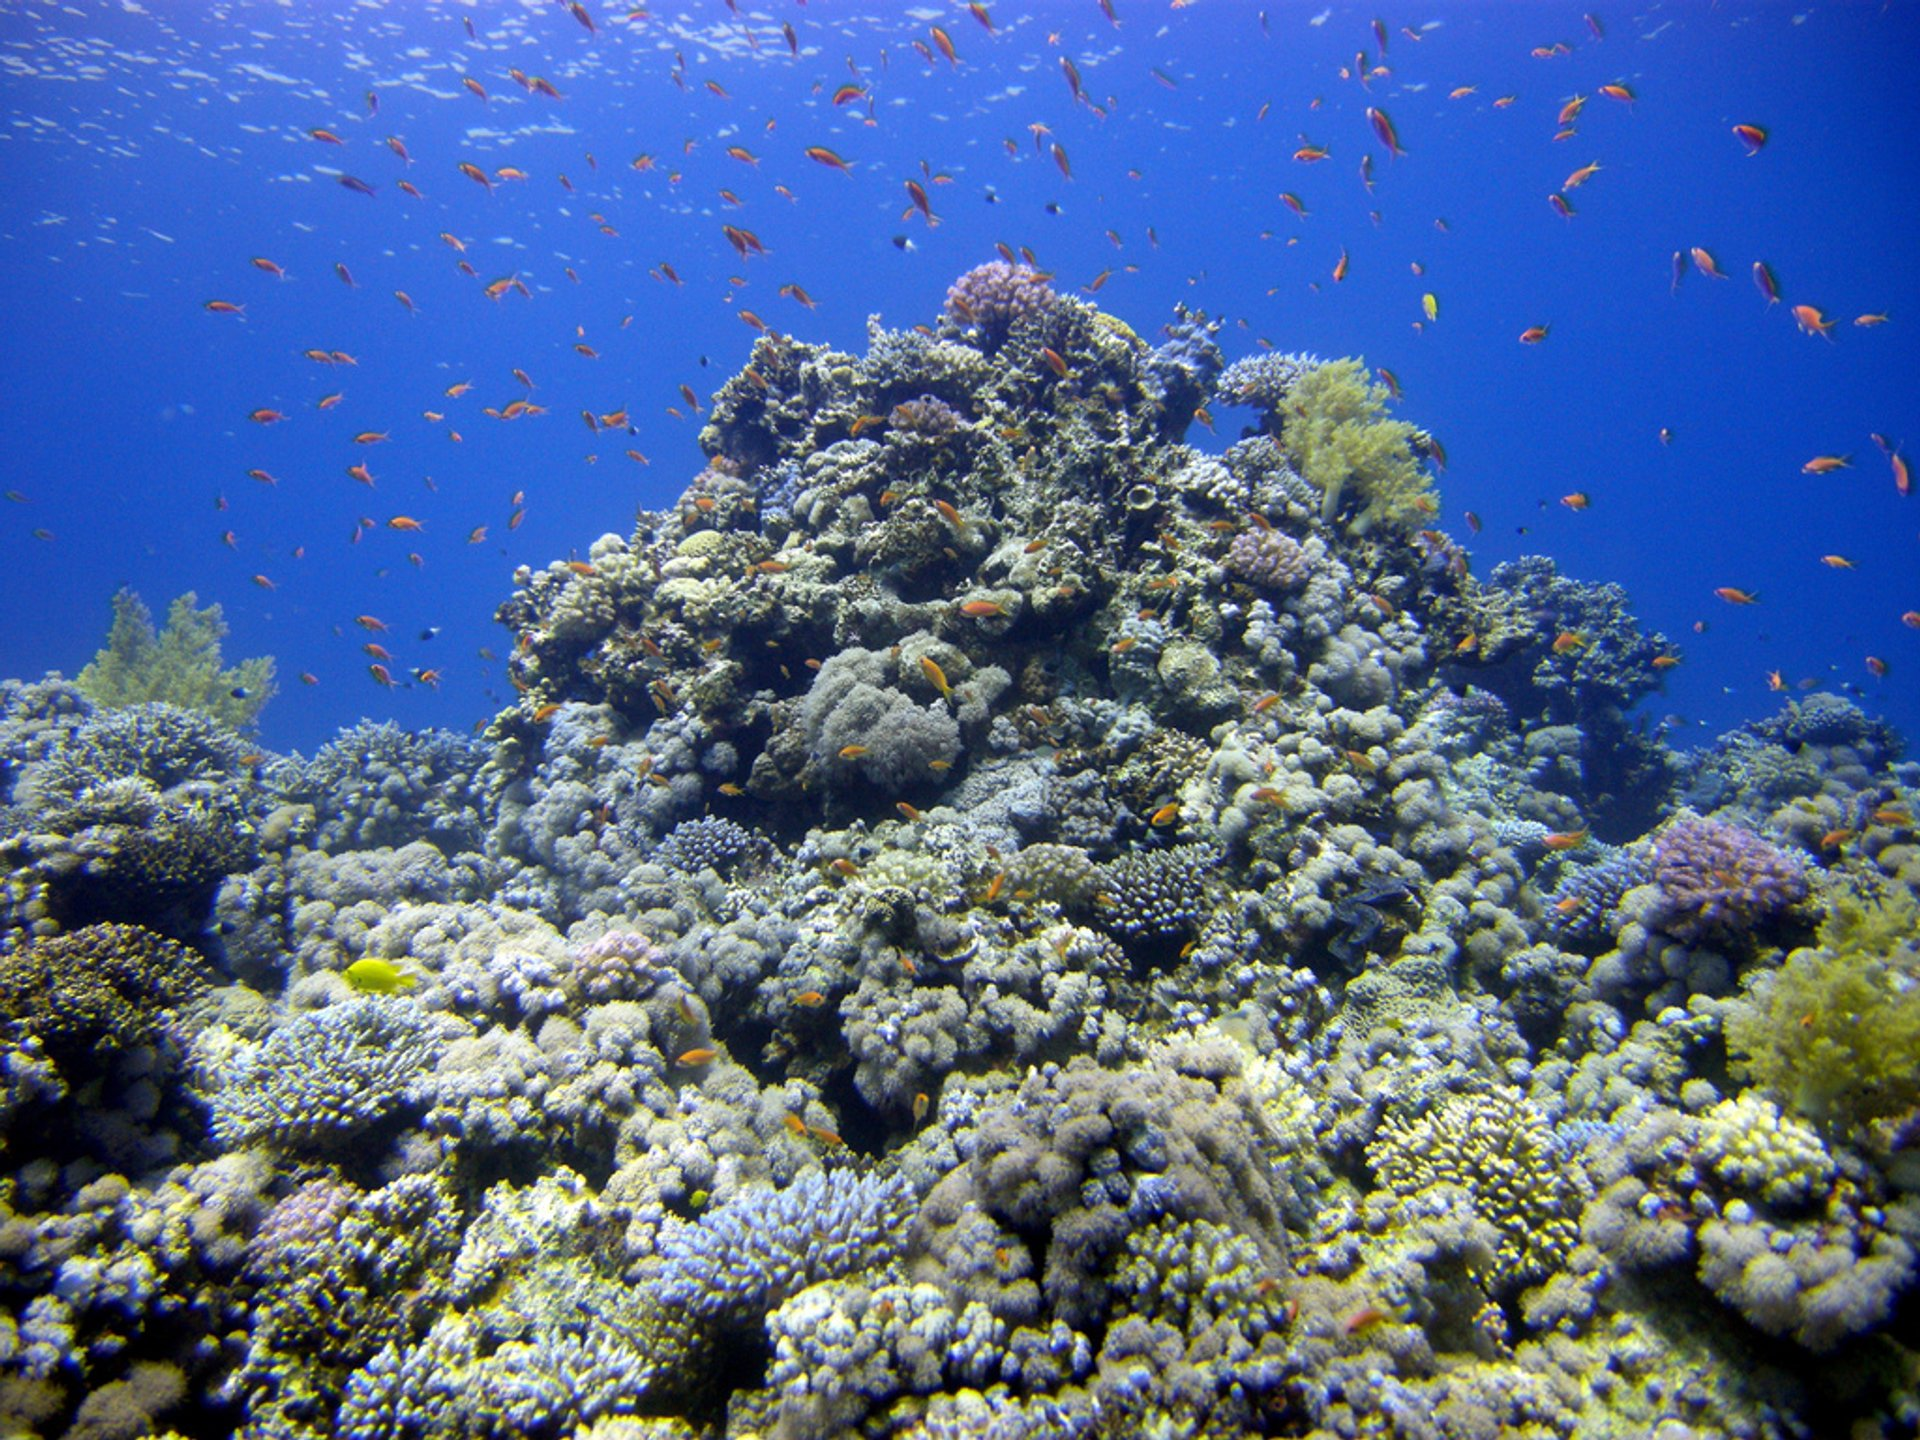 The Blue Hole - fish and coral reef saddle 2020